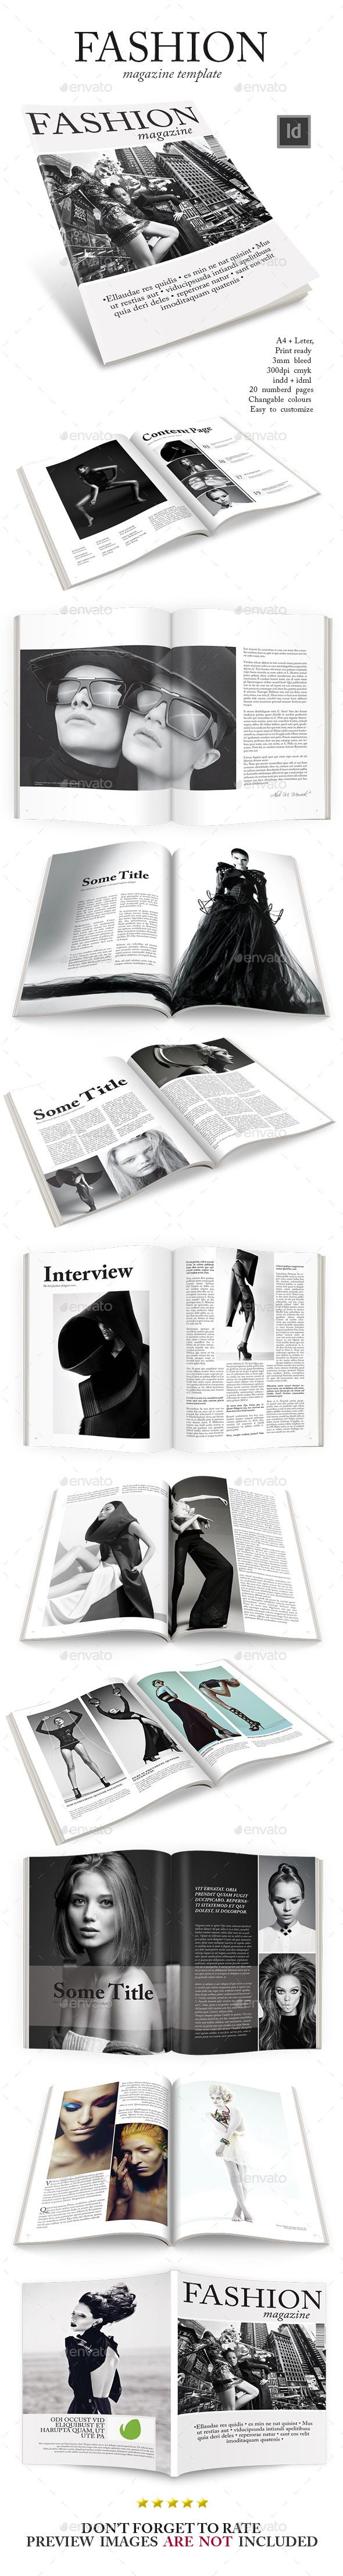 Fashion Magazine Template — InDesign INDD #classy #modern • Available here → https://graphicriver.net/item/fashion-magazine-template/9286785?ref=pxcr